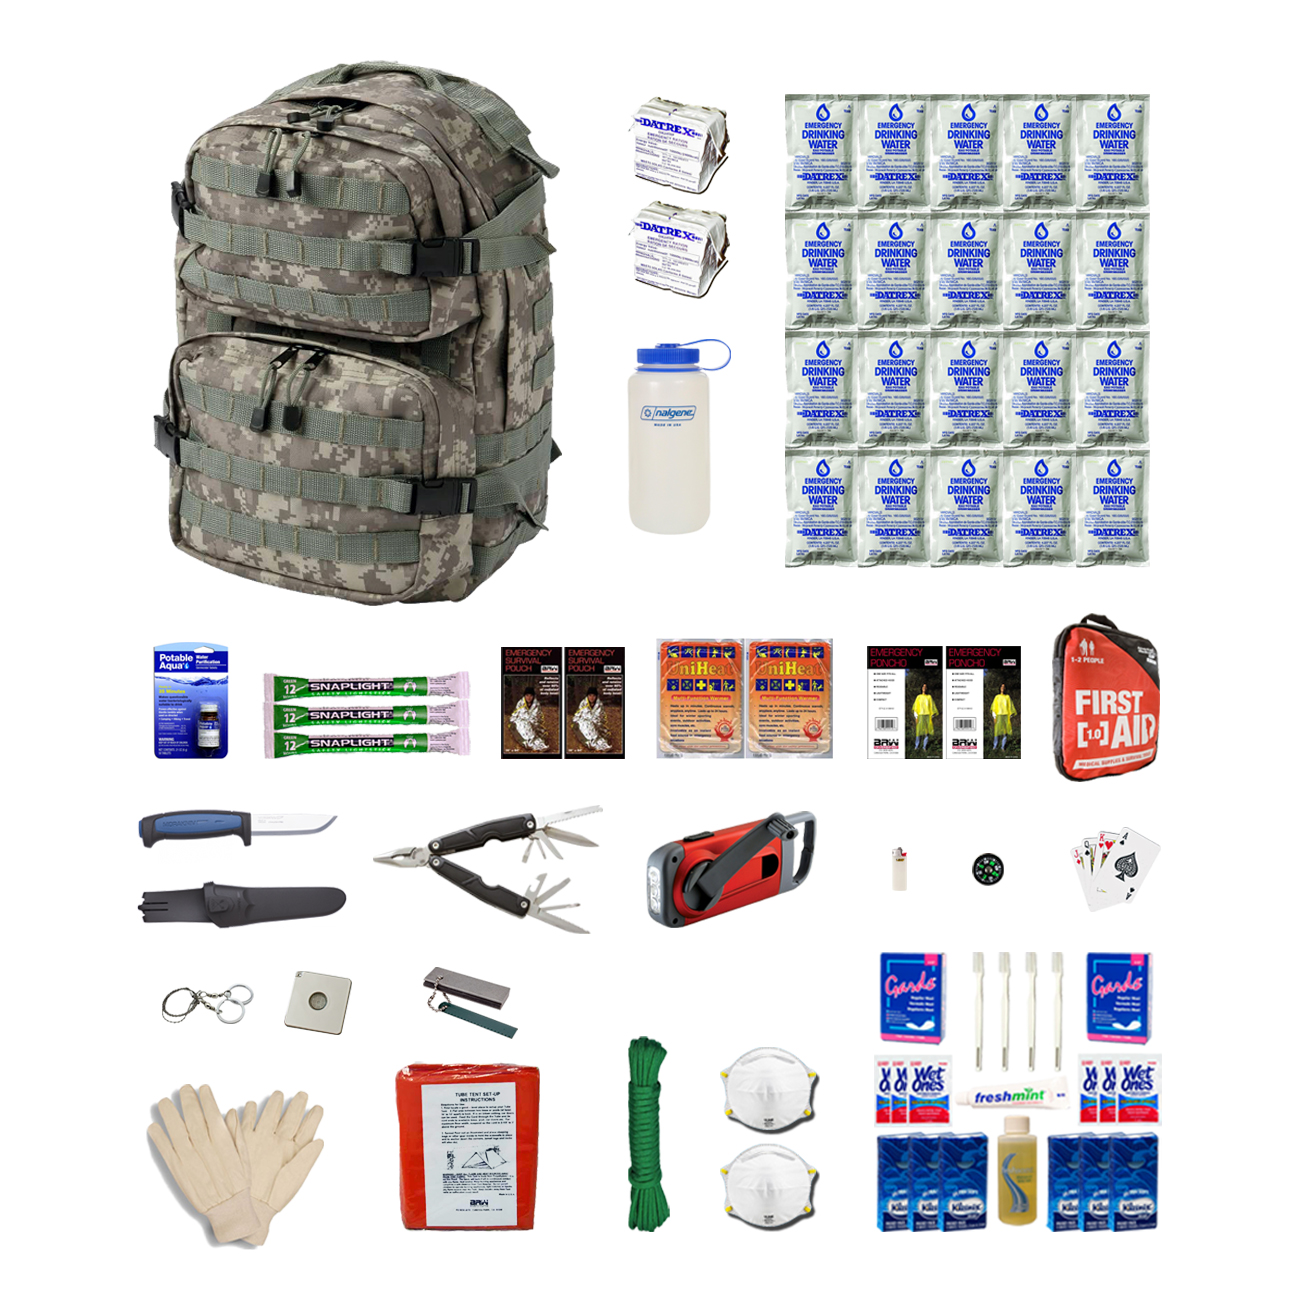 Combo Survival Kit Two For Earthquakes, Hurricanes, Floods, Tornadoes, Disaster Preparedness by